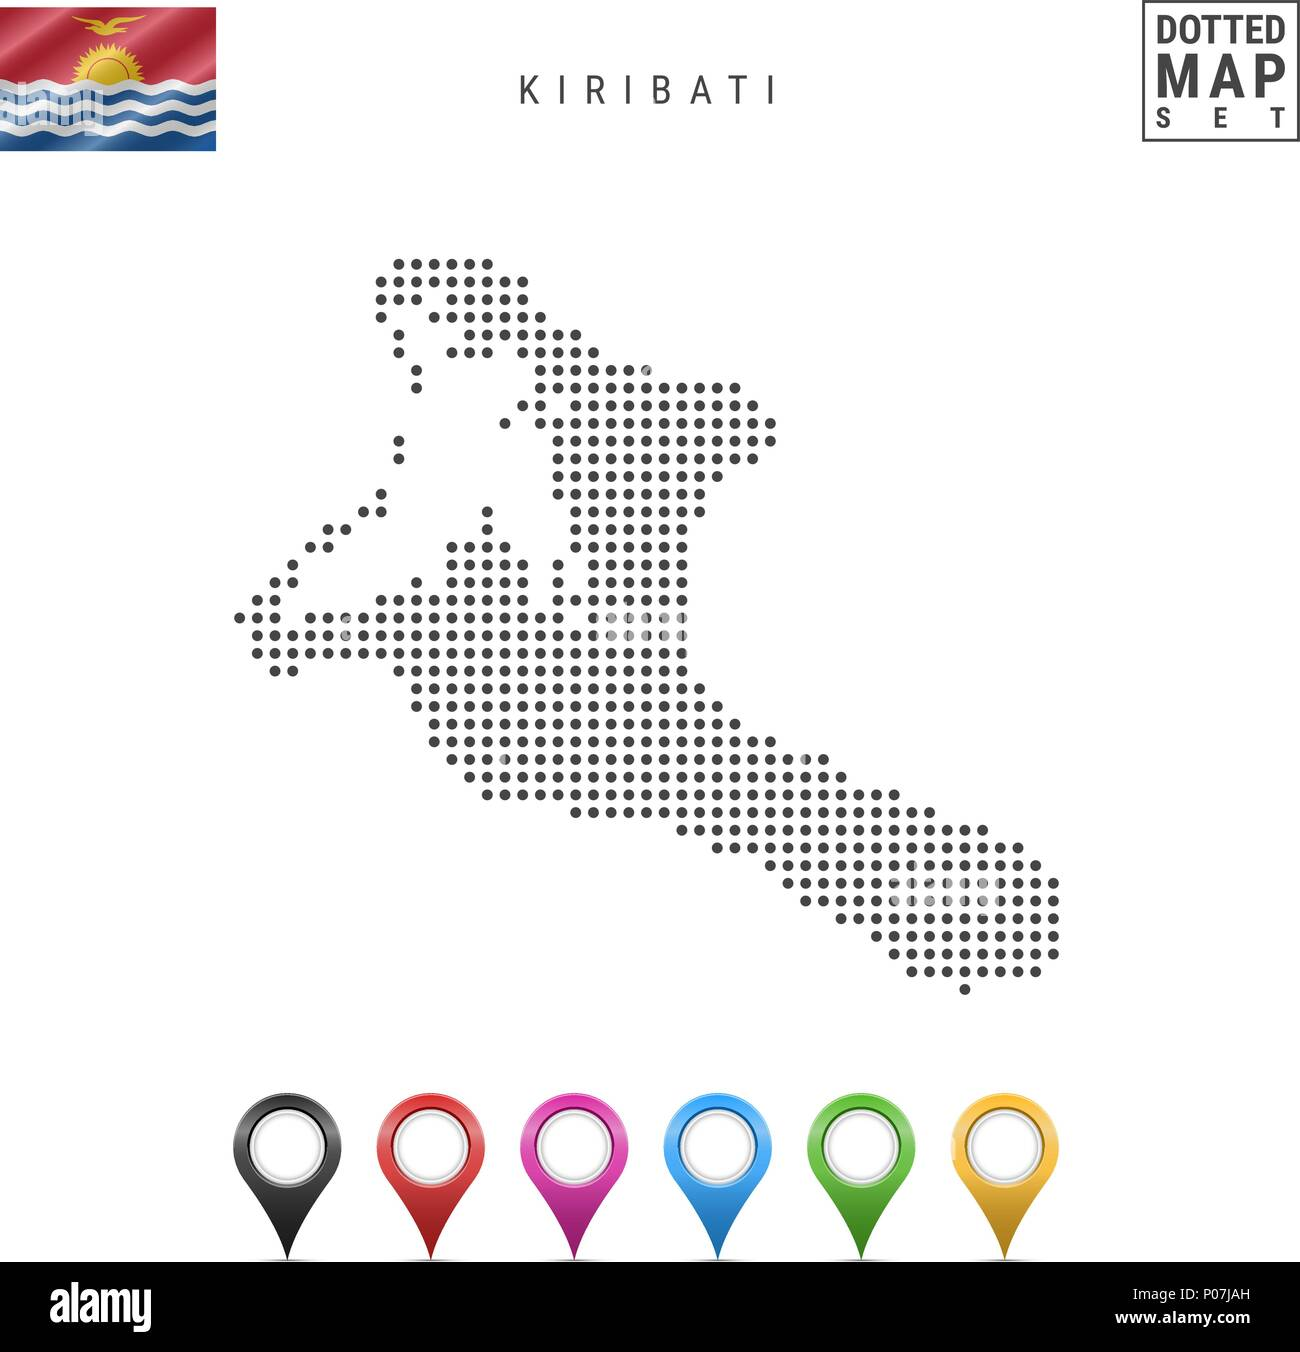 Vector Dotted Map of Kiribati. Simple Silhouette of Kiribati. National Flag of Kiribati. Set of Multicolored Map Markers - Stock Image